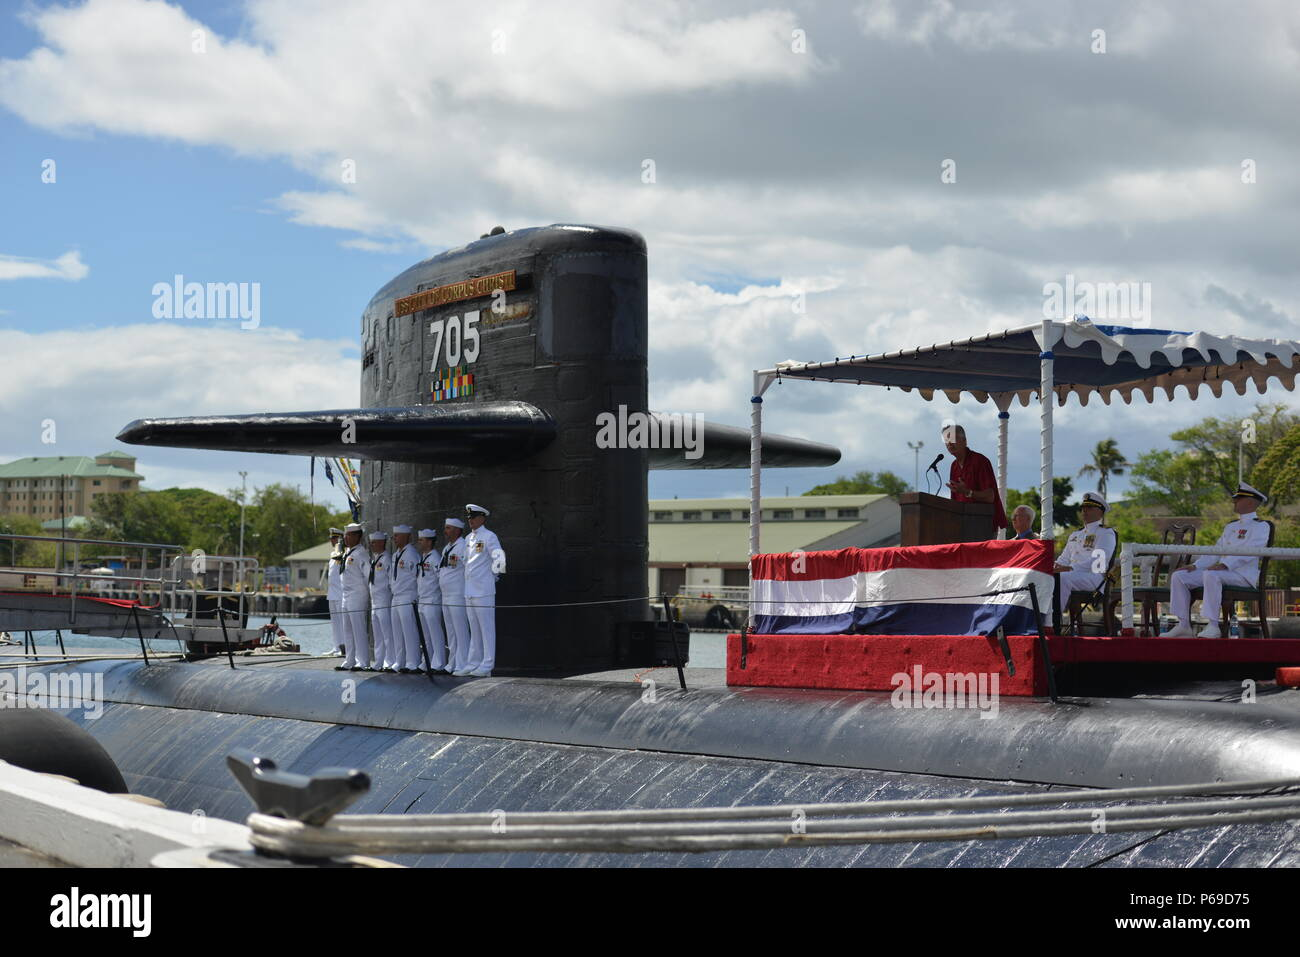 160530-N-LY160-181 JOINT BASE PEARL HARBOR-HICKAM, Hawaii (May 30, 2016) Mark Scott, a city councilman of Corpus Christi, Texas, addresses Memorial Day guests at the Los Angeles-class fast-attack submarine USS City of Corpus Christi (SSN 705) decommissioning ceremony at Joint Base Pearl Harbor-Hickam. City of Corpus Christi concluded 33 years of service as the second U.S. warship to be named after Corpus Christi, Texas. (U.S. Navy photo by Mass Communication Specialist 2nd Class Michael H. Lee) - Stock Image